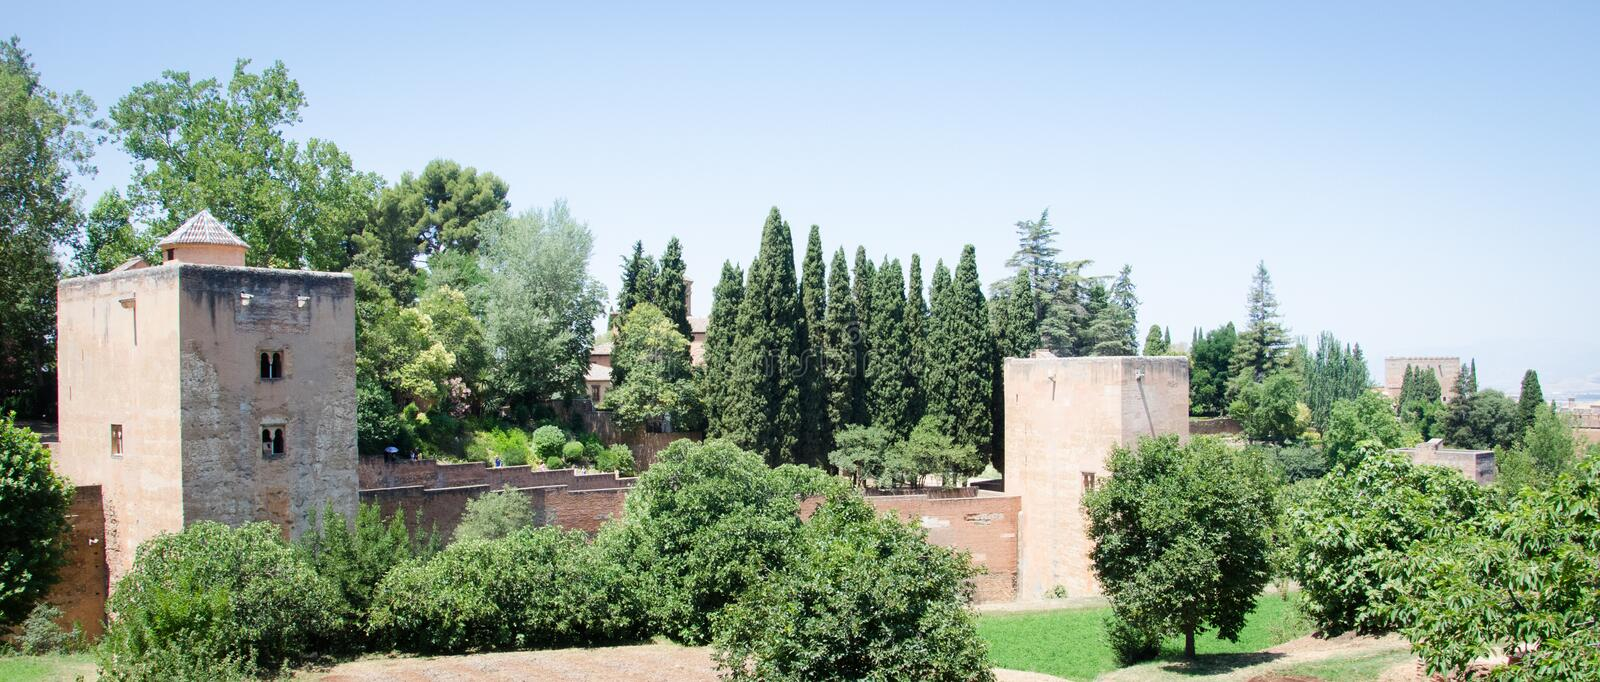 Detail of a wall of the Alhambra palace in Granada. Spain stock images